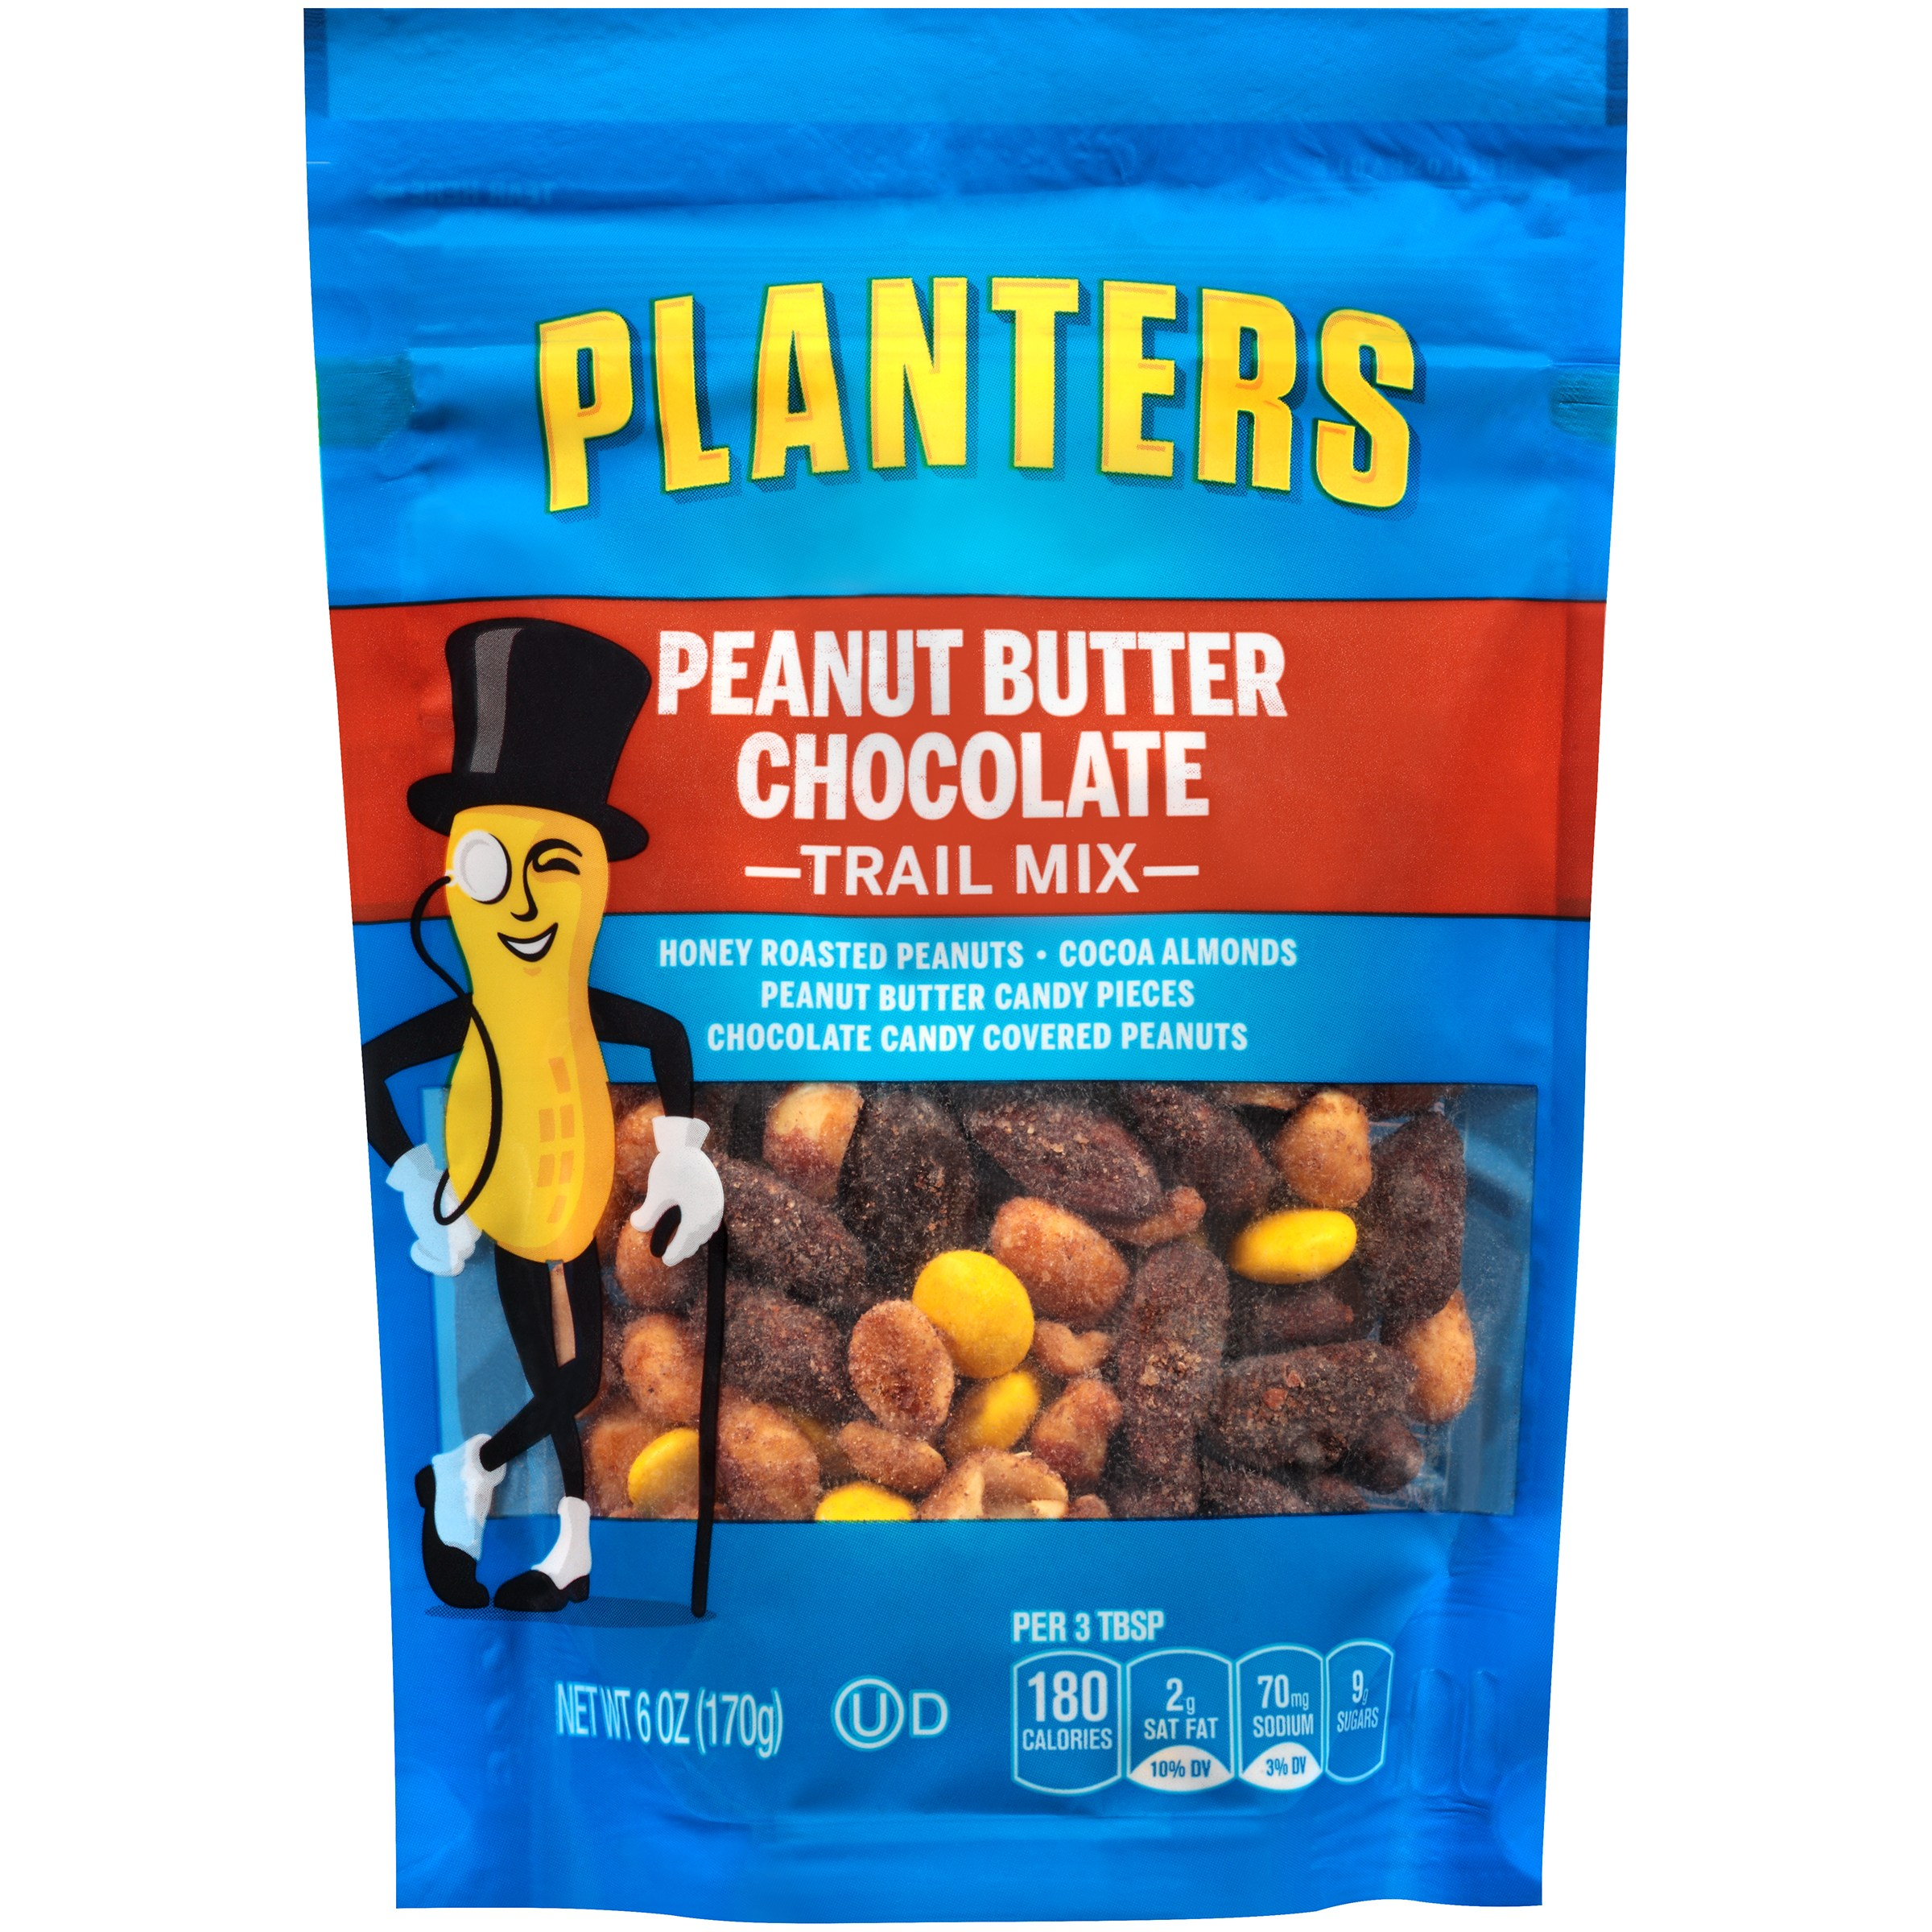 Planters Trail Mix Peanut Butter Chocolate, 6 Oz